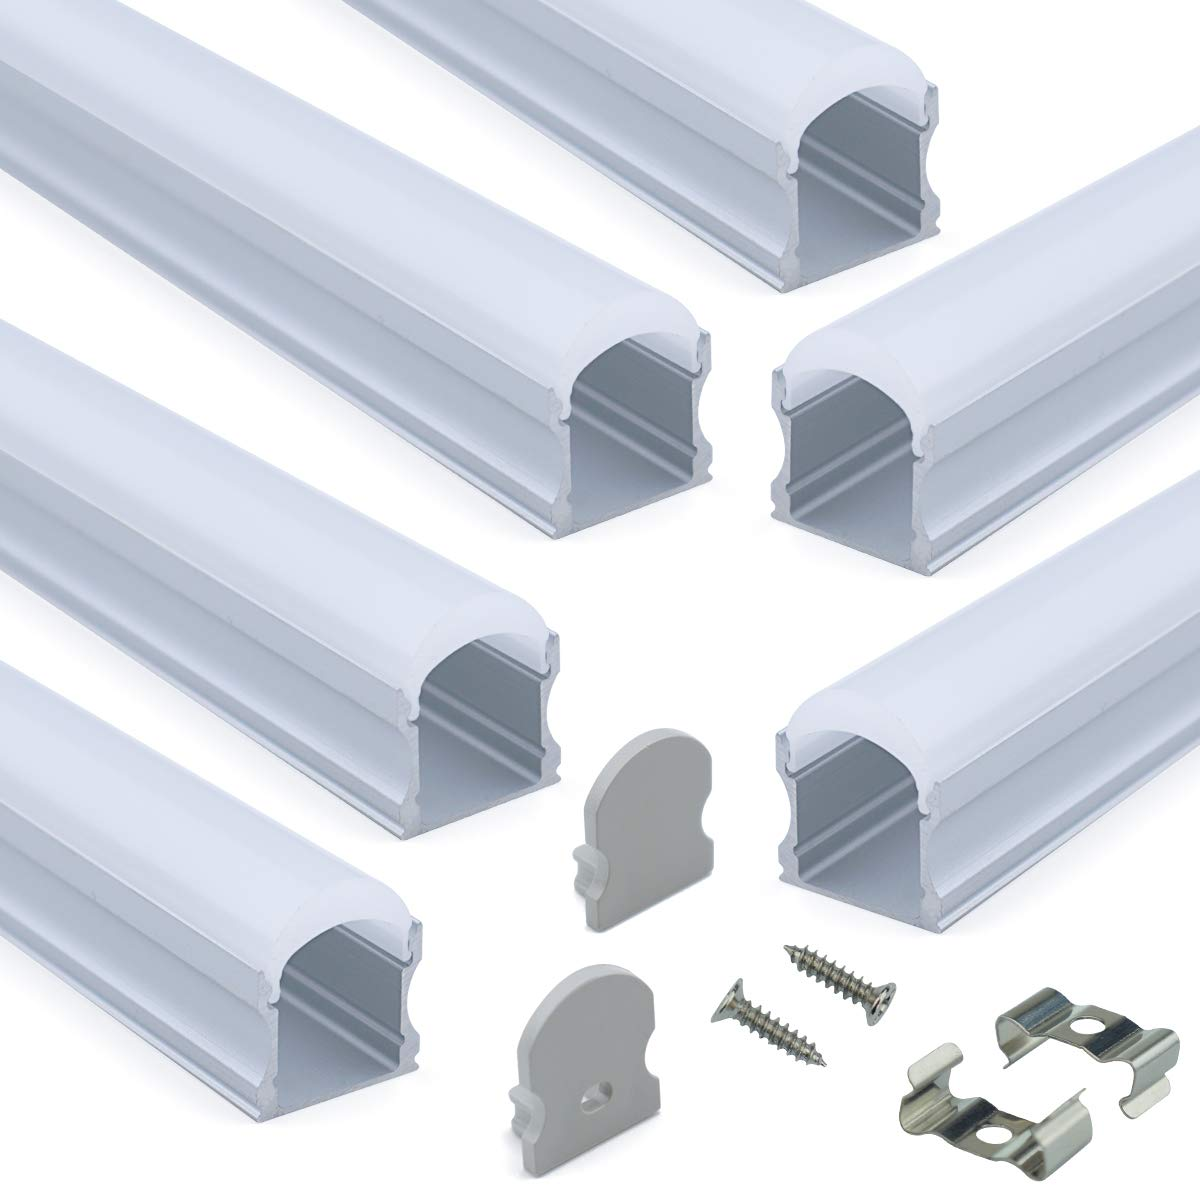 Muzata 6-Pack 3.3ft/1Meter 17x20mm U Shape LED Aluminum Channel System with Cover, End Caps and Mounting Clips Aluminum Profile for LED Strip Light Installations, Diffuser U108,Series LU2 LN1